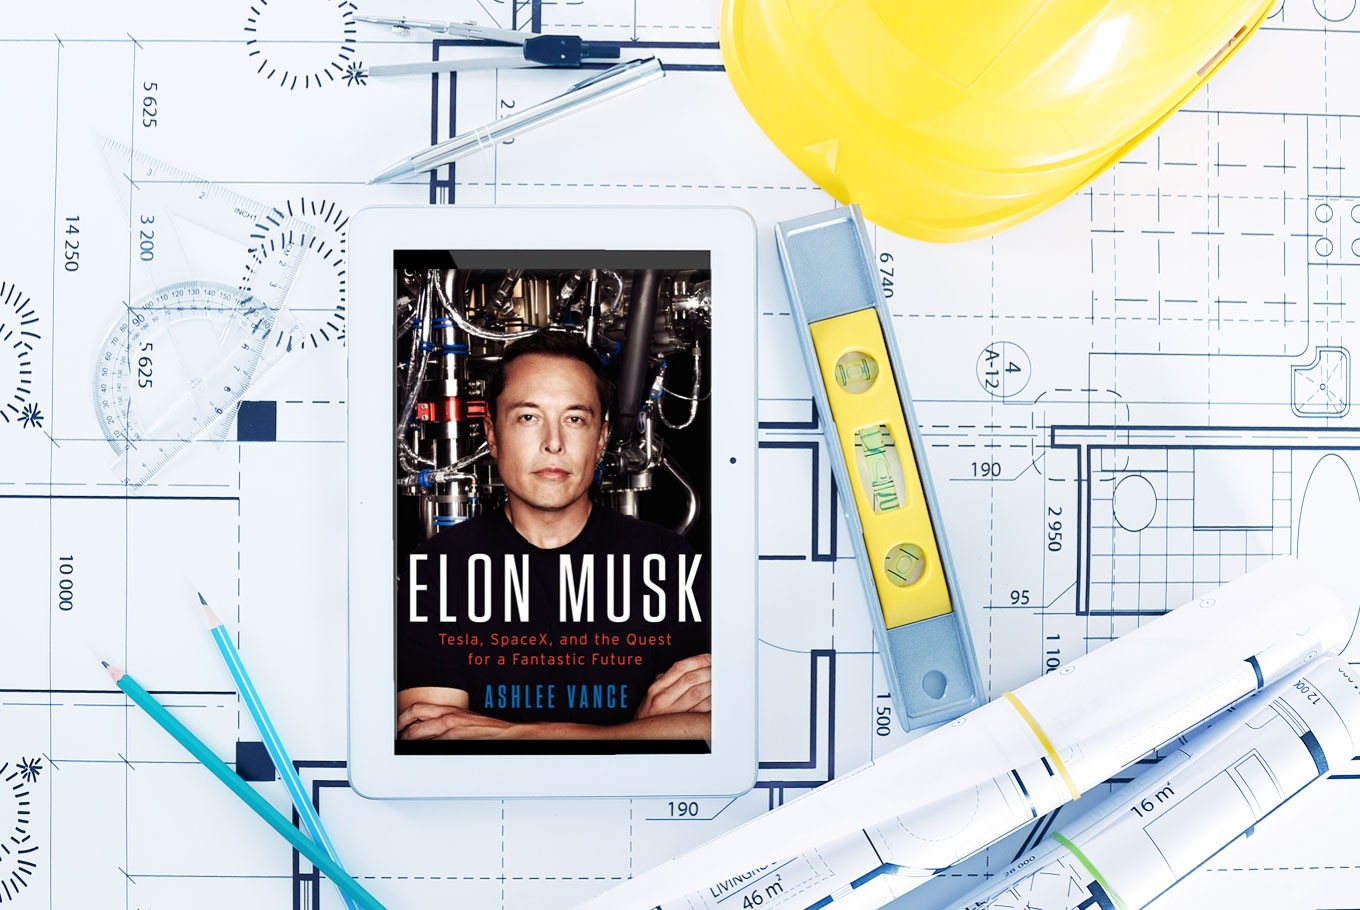 Book Review: A glimpse into Elon Musk's 'world- saving' visions